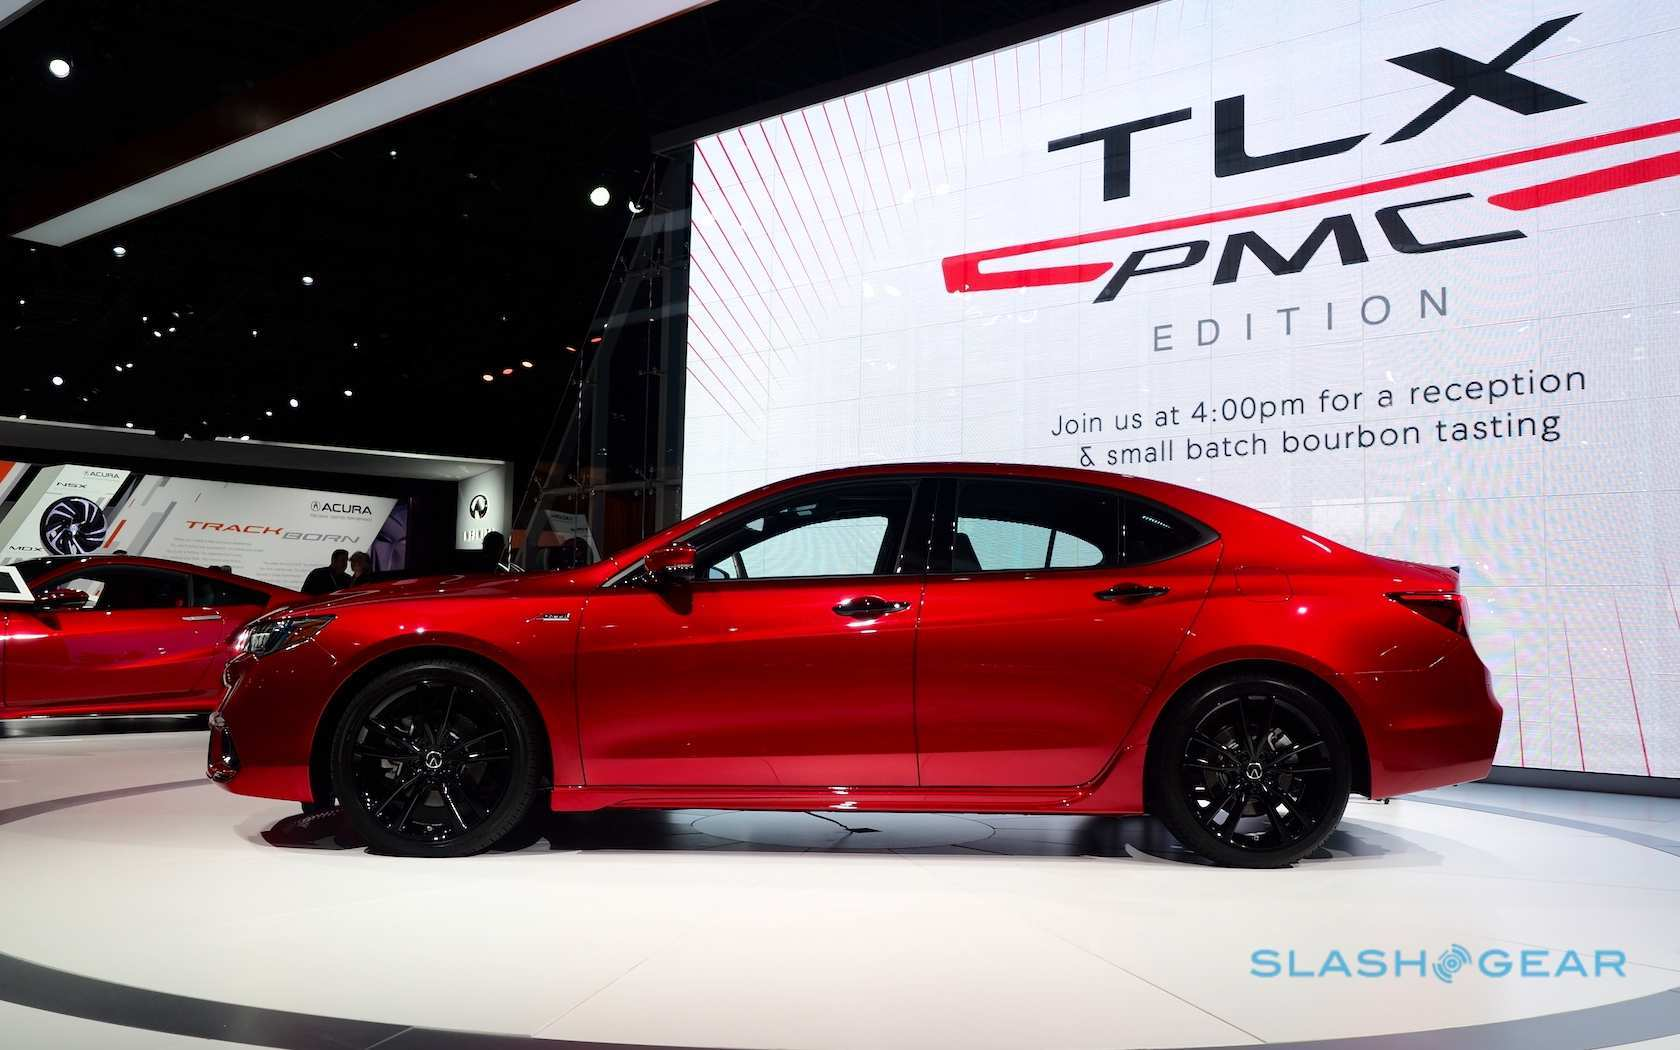 77 All New Acura Tlx 2020 Model Wallpaper with Acura Tlx 2020 Model